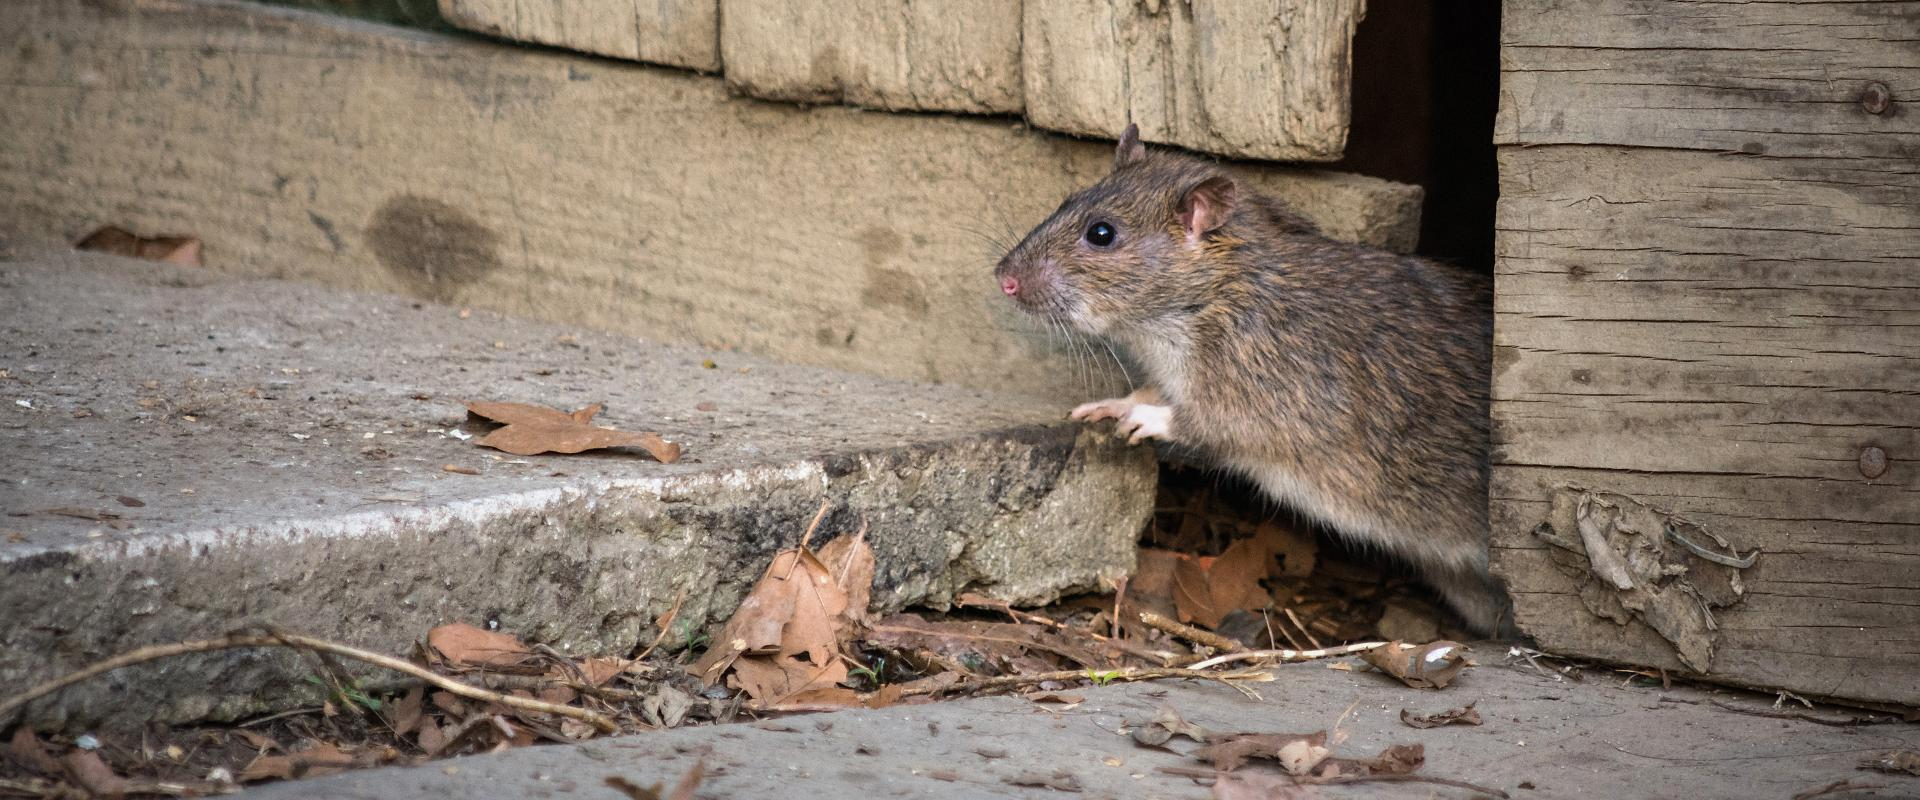 rodent on wood